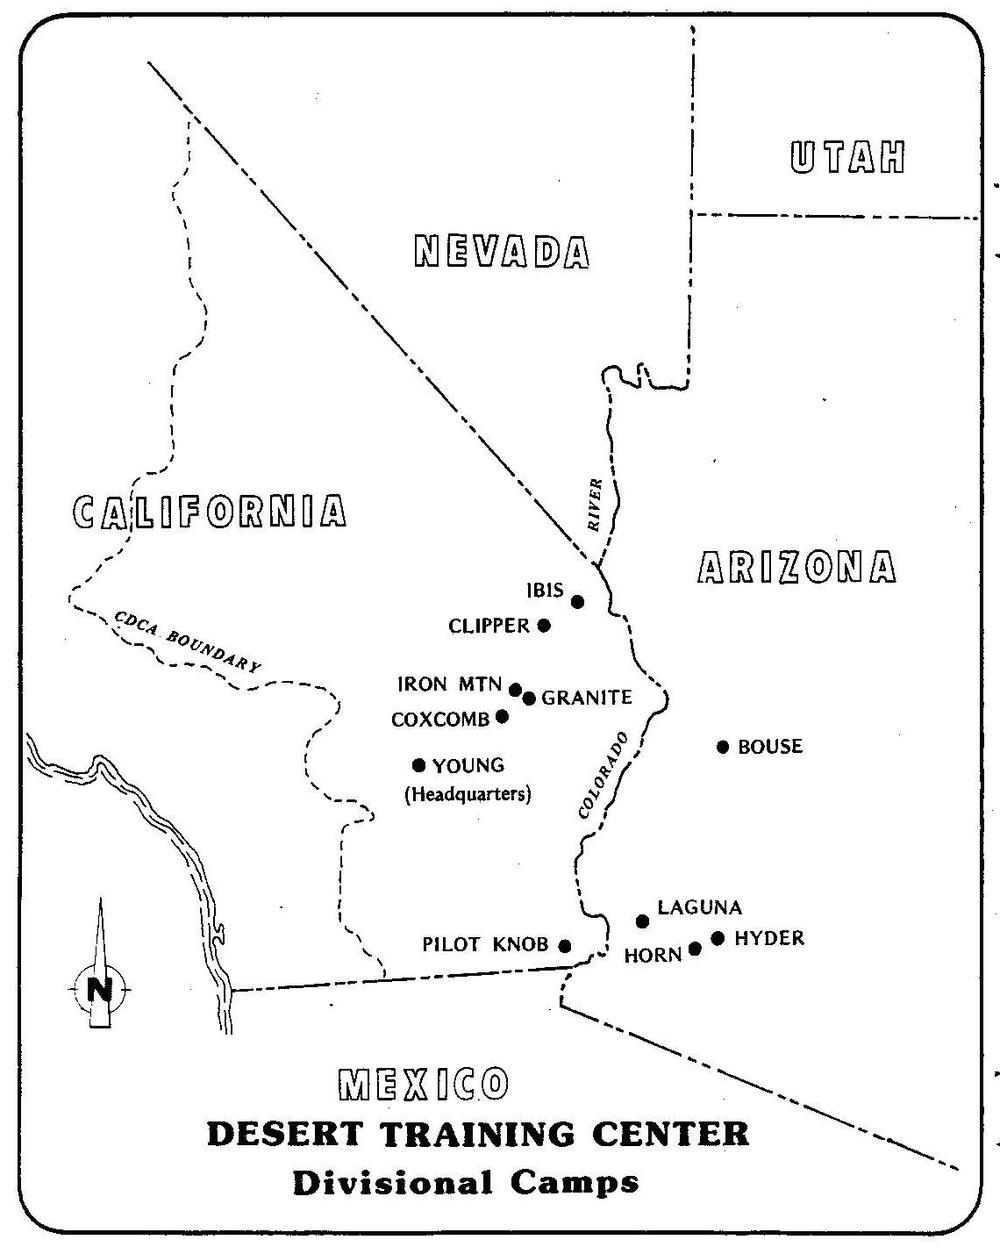 The Desert Training Center/ California- Arizona Maneuver spanned three states, though the majority of divisional camps and the headquarters were located in California.  Area maps courtesy of the Bureau of Land Management, Needles Field Office.